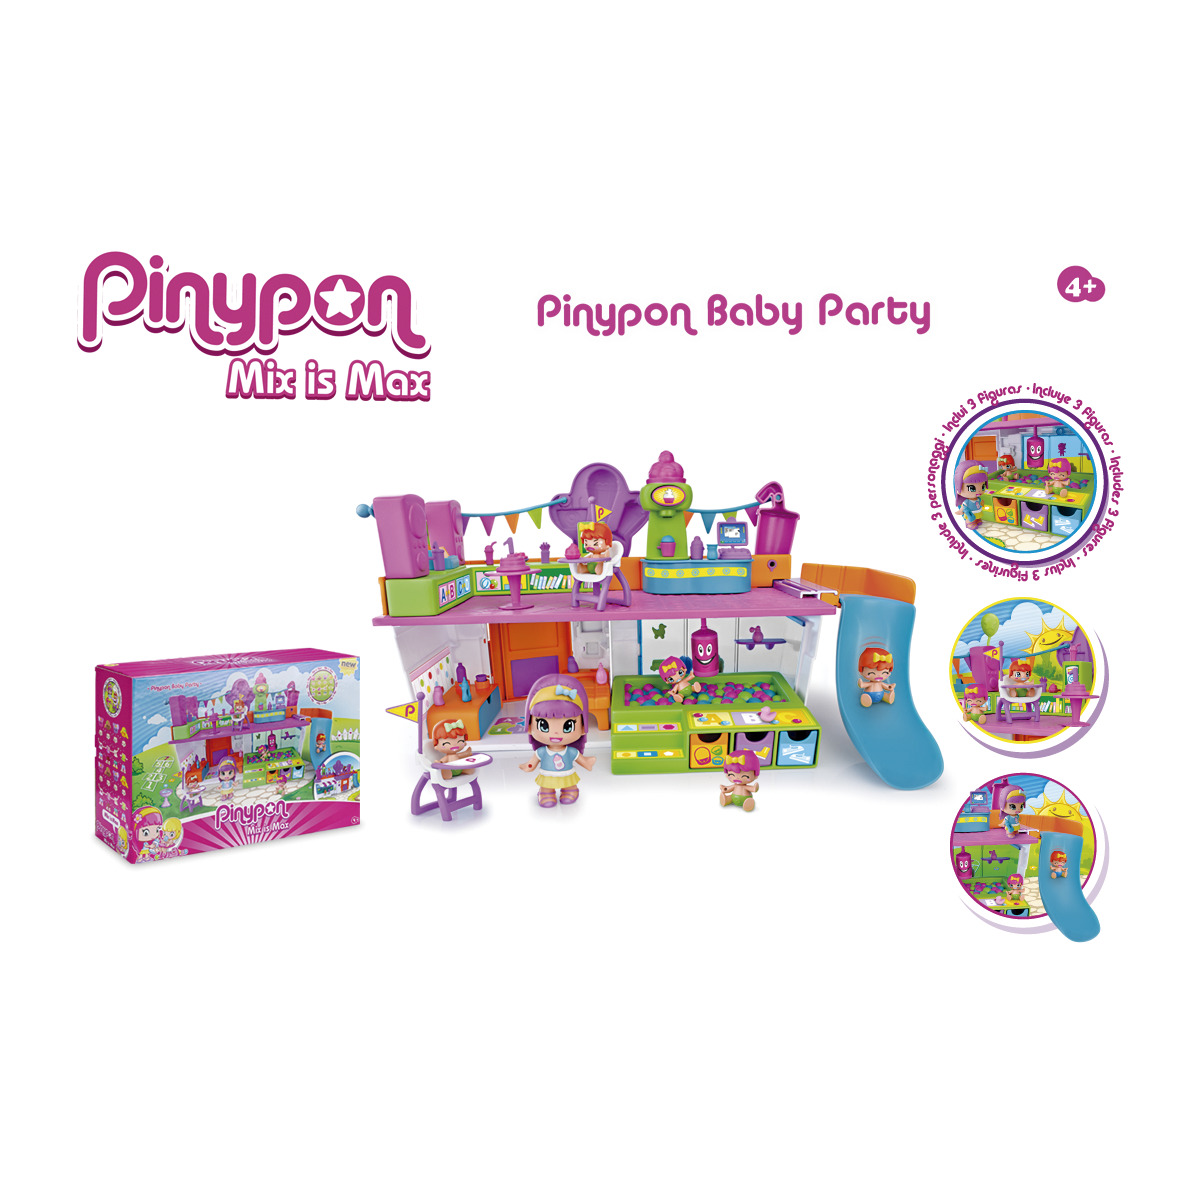 PINYPON BABY PARTY 14351 - N8819